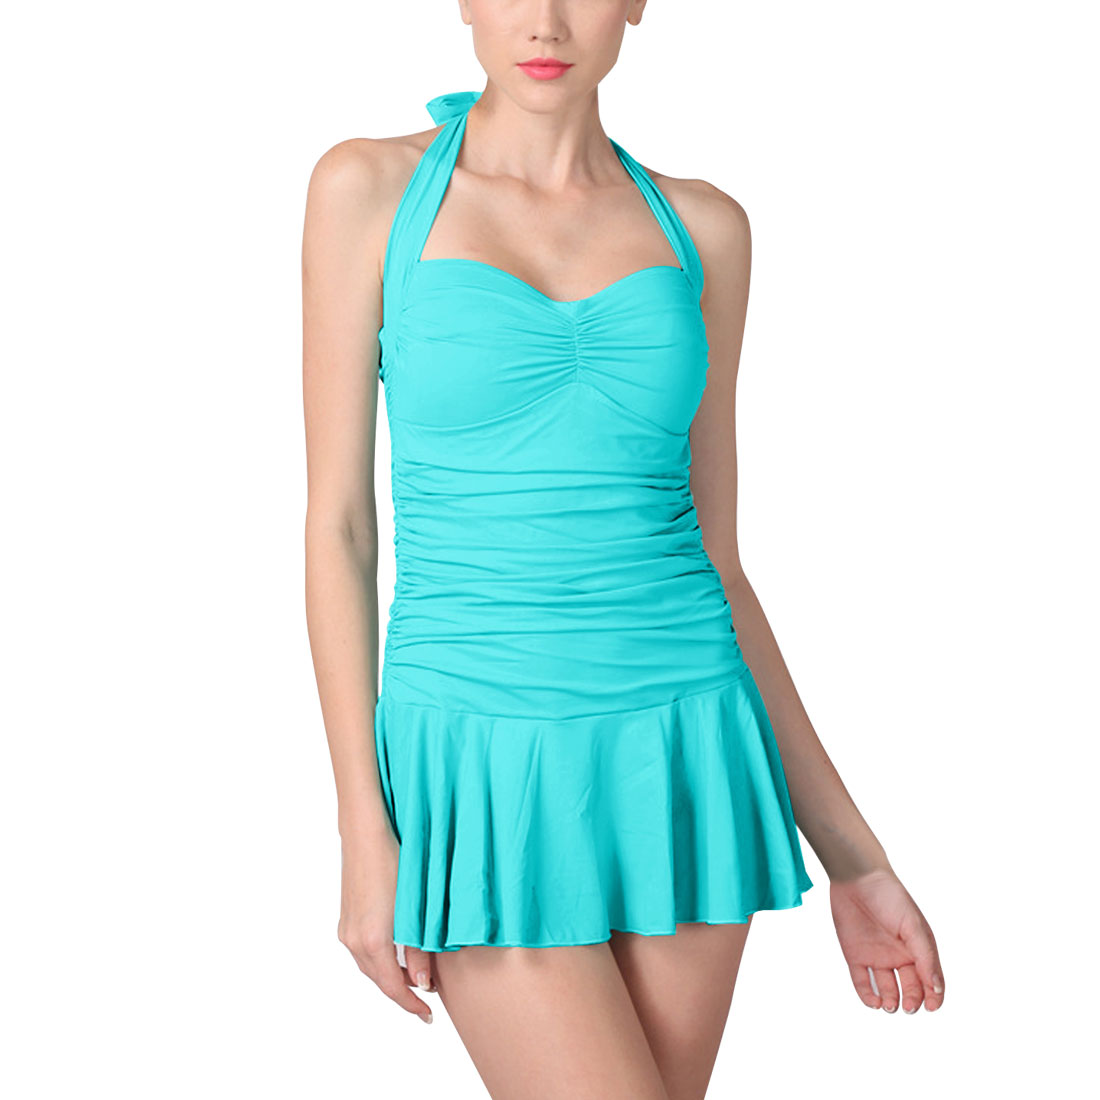 Women One-Piece Slim Vintage Shirred Swimwear Dress US 10 Bathing Suit